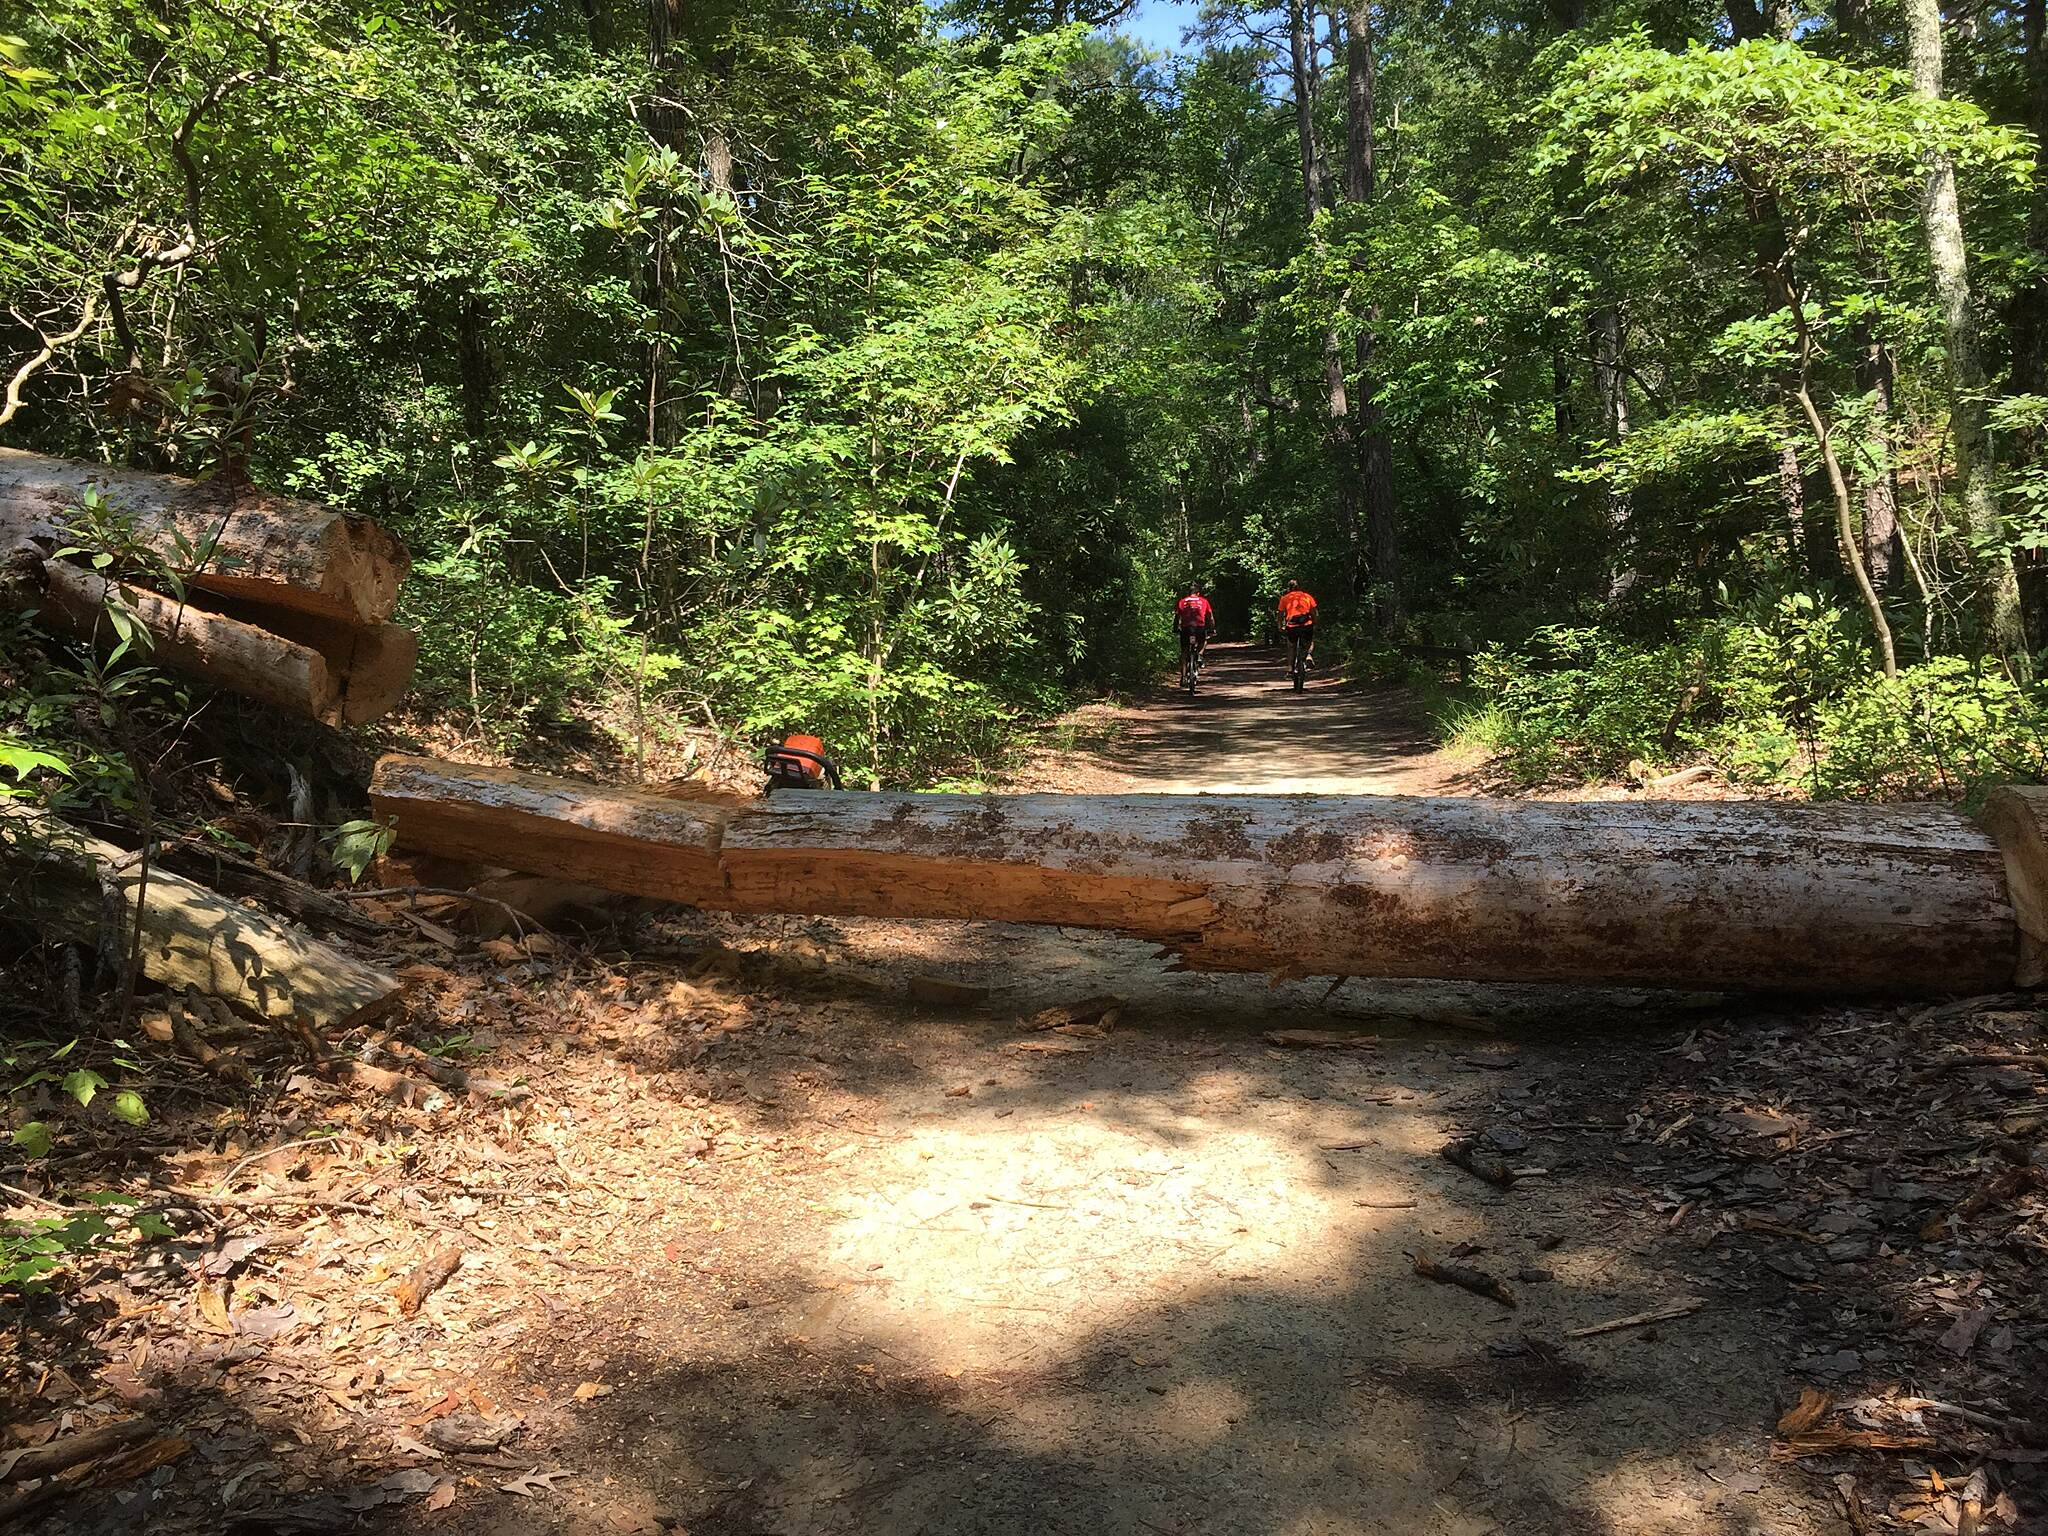 Cape Henry Trail Tree down Picture taken by RGarciaSunday July 19, 2015